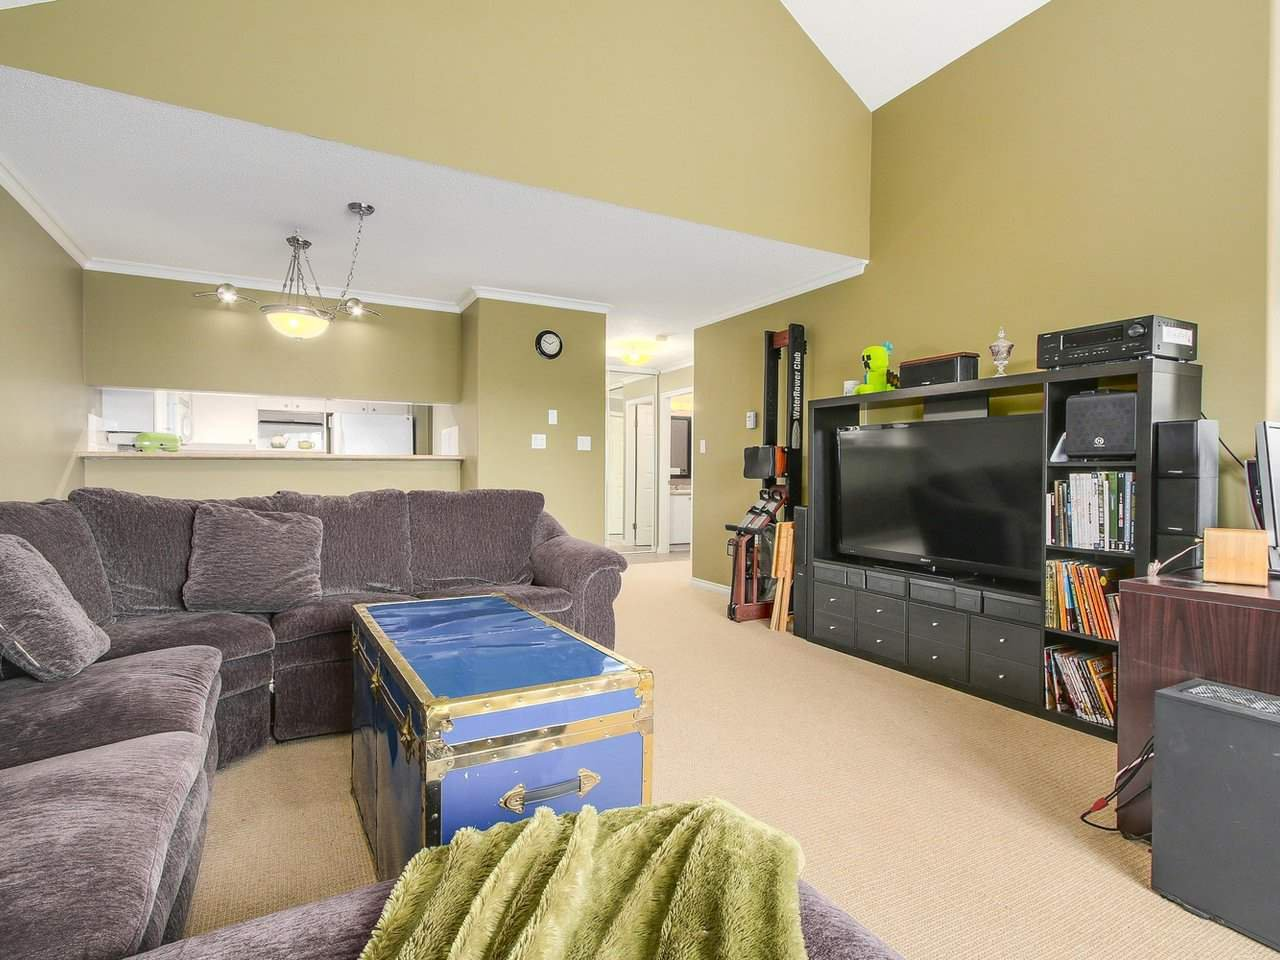 Photo 3: Photos: 304 8120 BENNETT Road in Richmond: Brighouse South Condo for sale : MLS®# R2191205